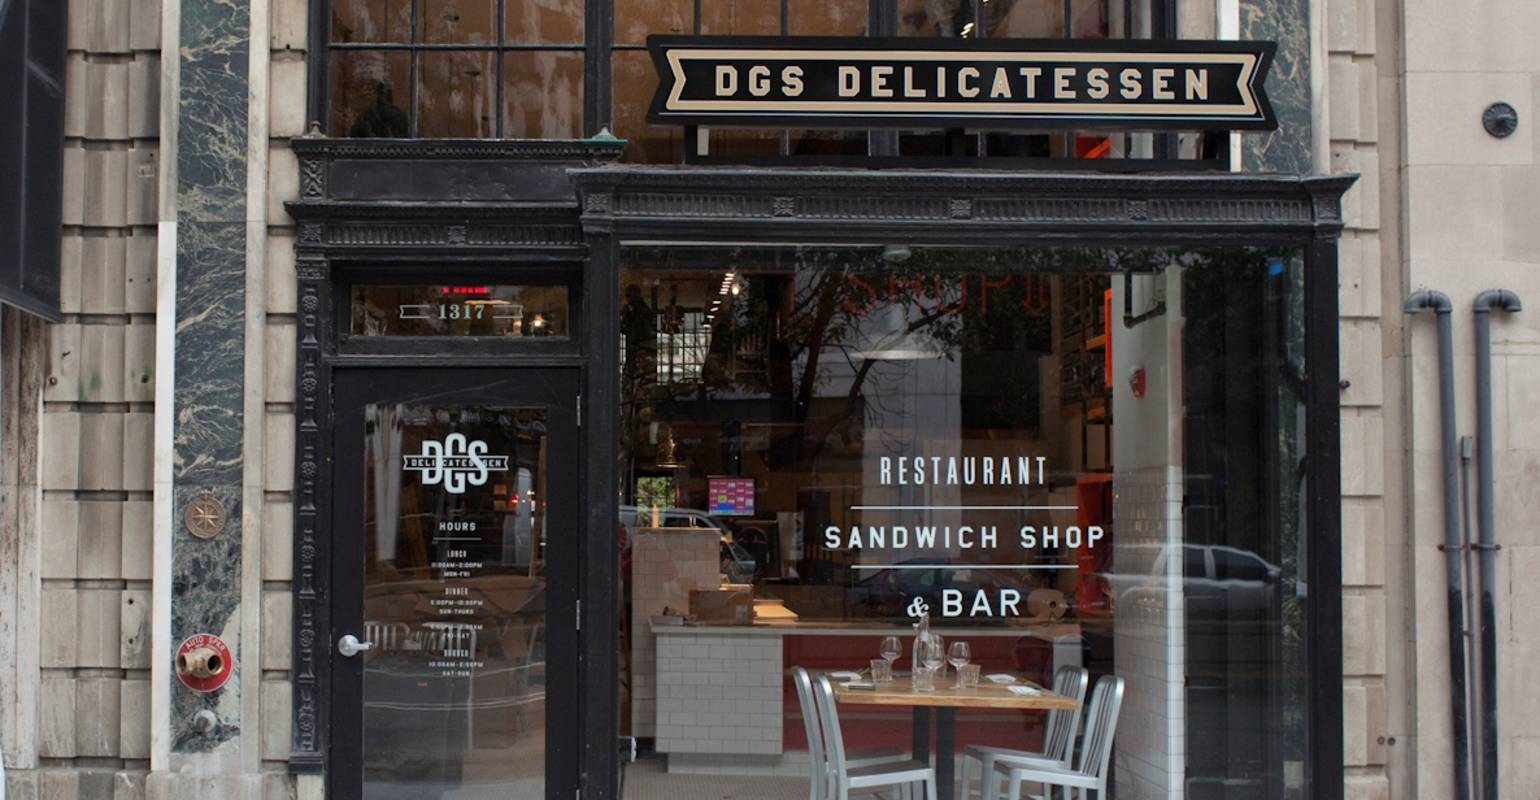 DGS Delicatessen